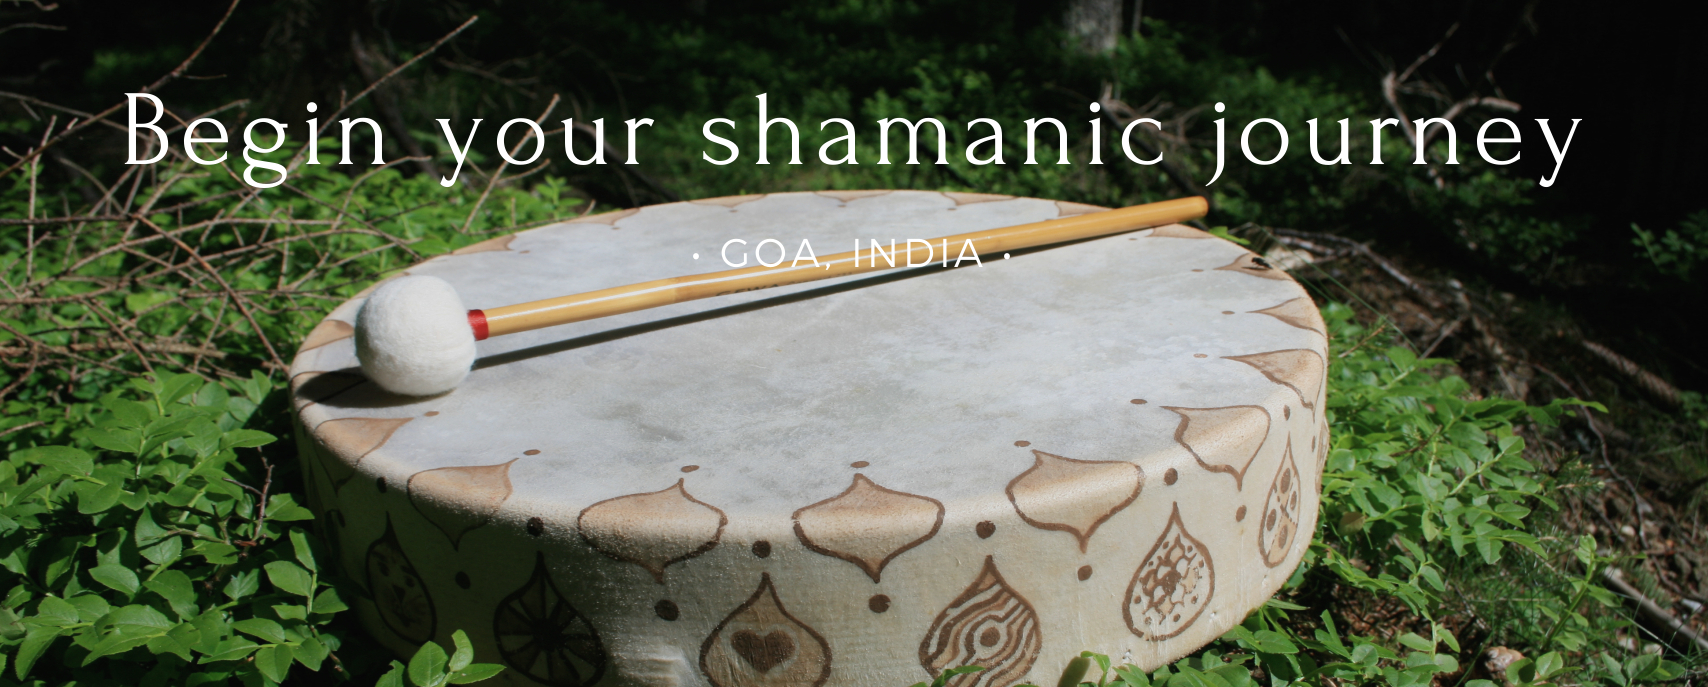 Shamanism Course in Goa, India